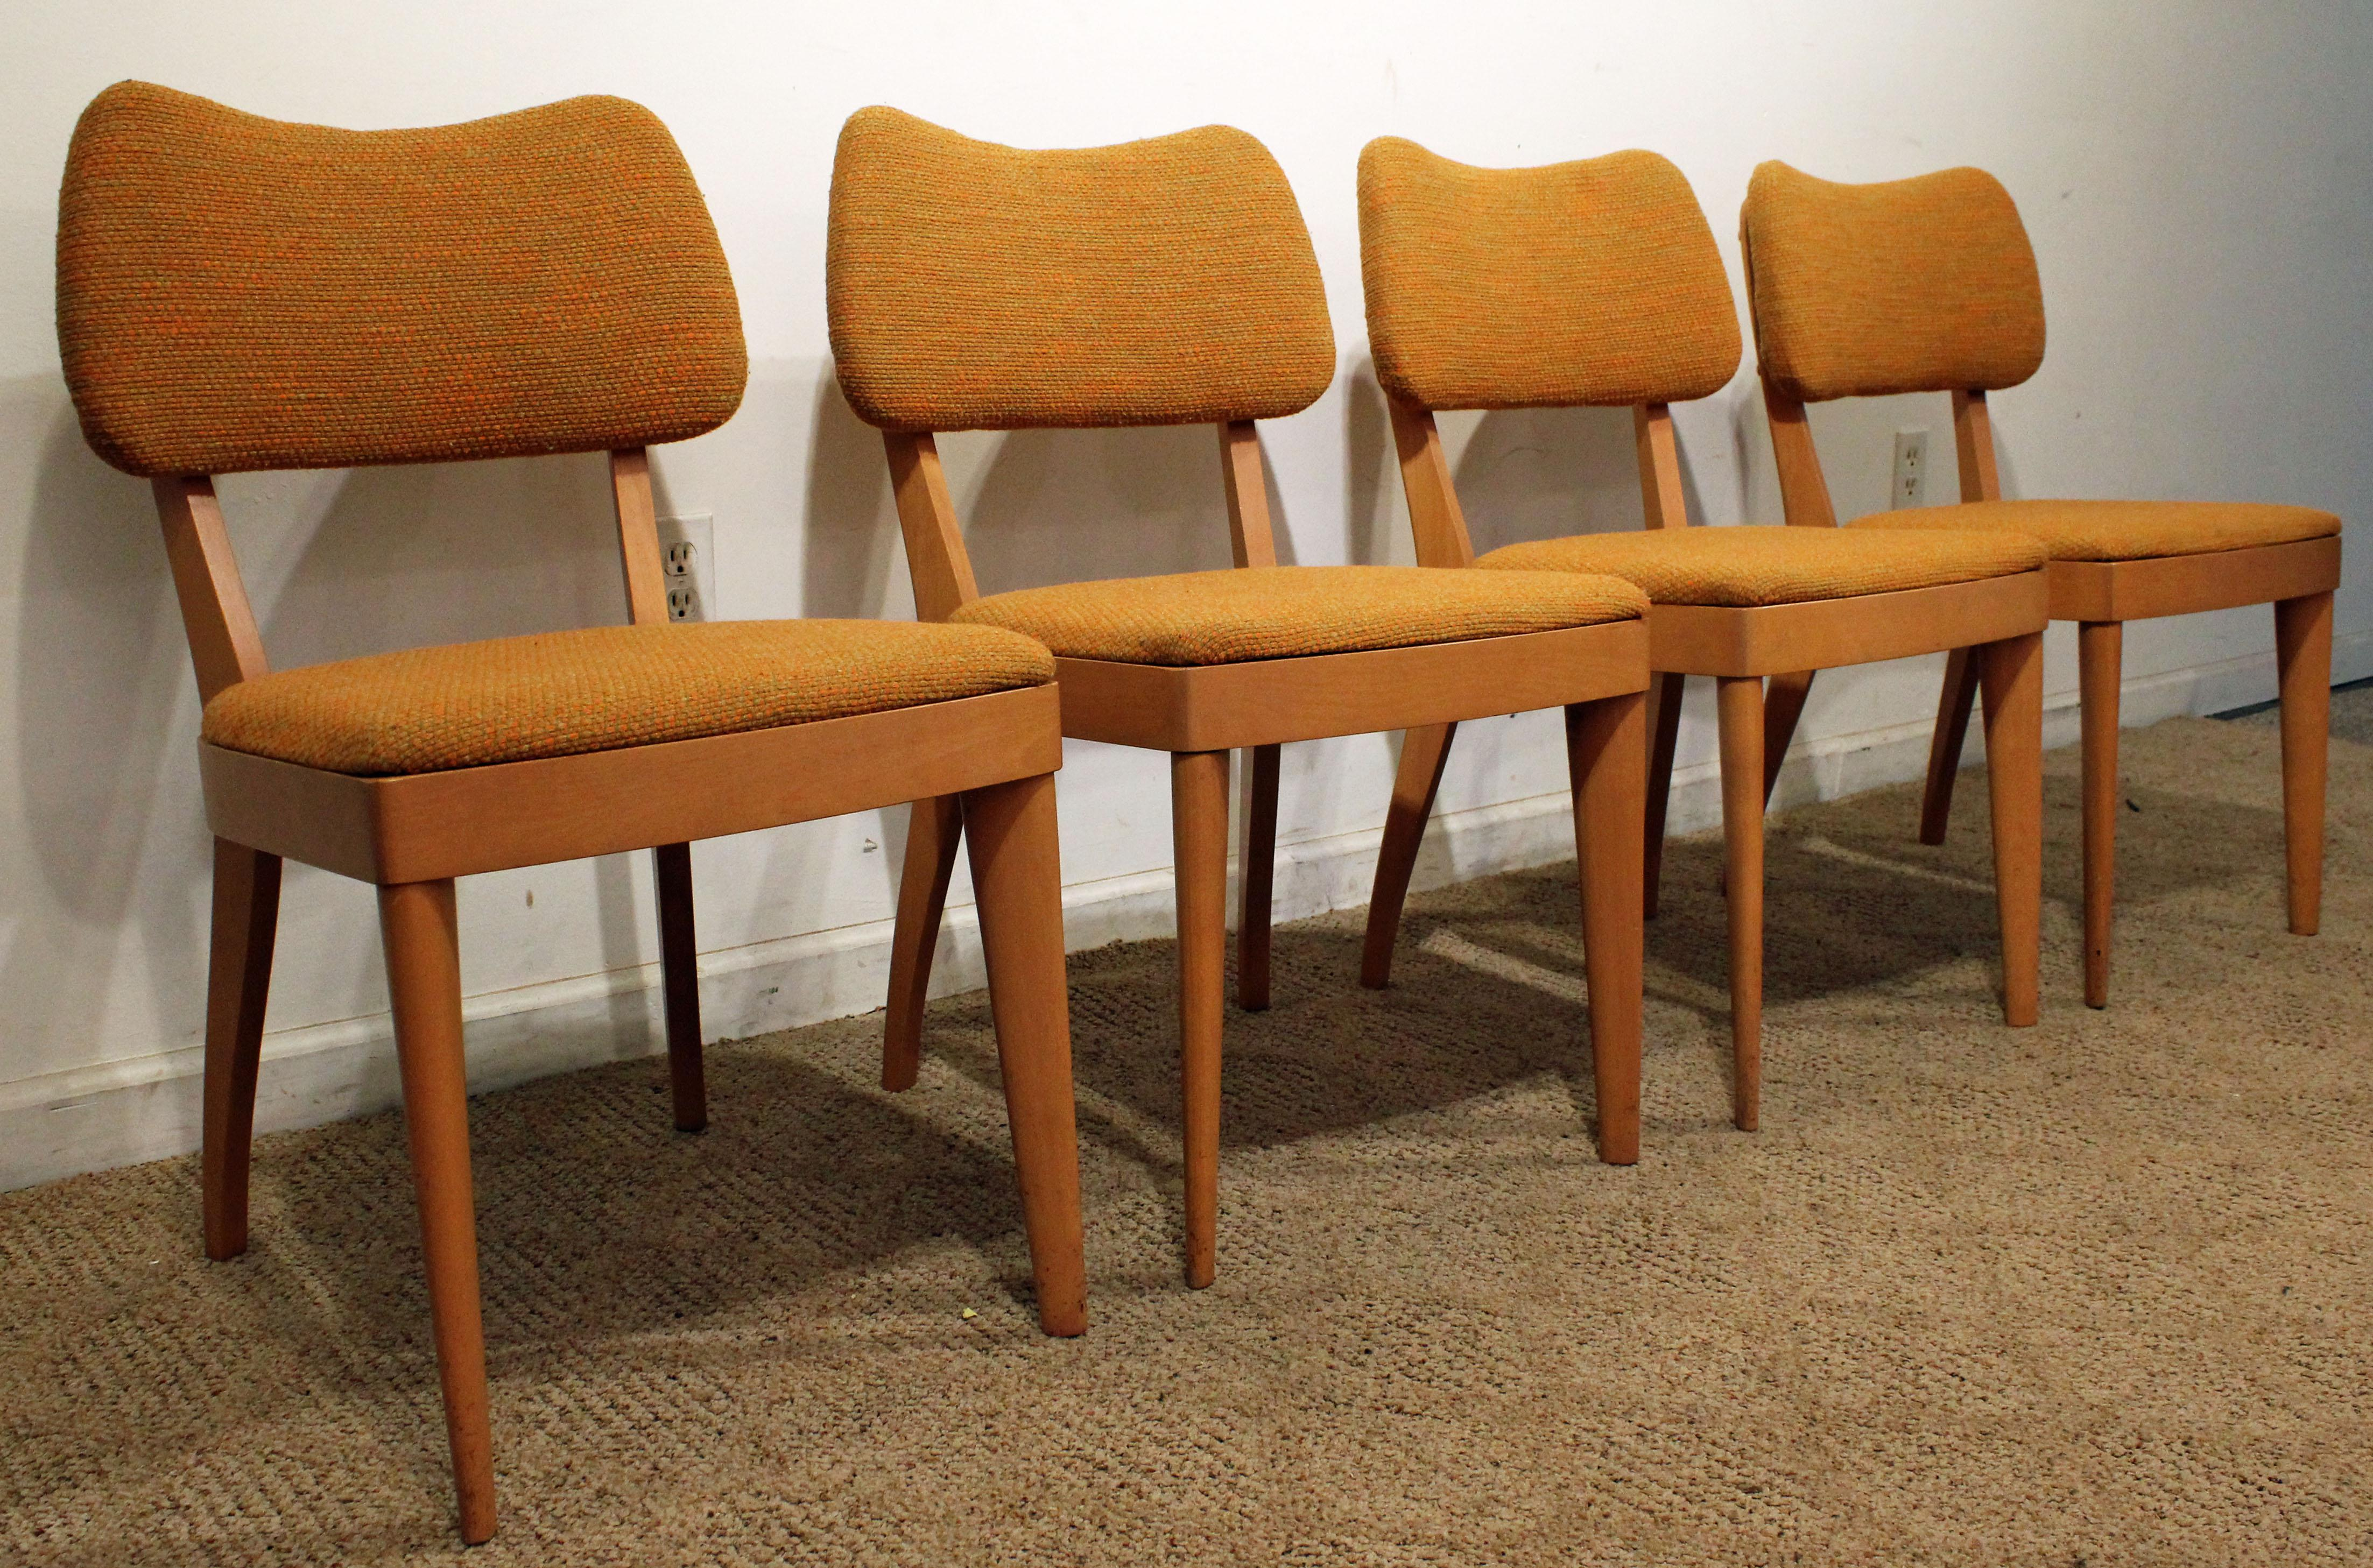 danish design dining chairs small dining offered is set of midcentury dining chairs by heywood wakefield this danish modern set wakefield champagne